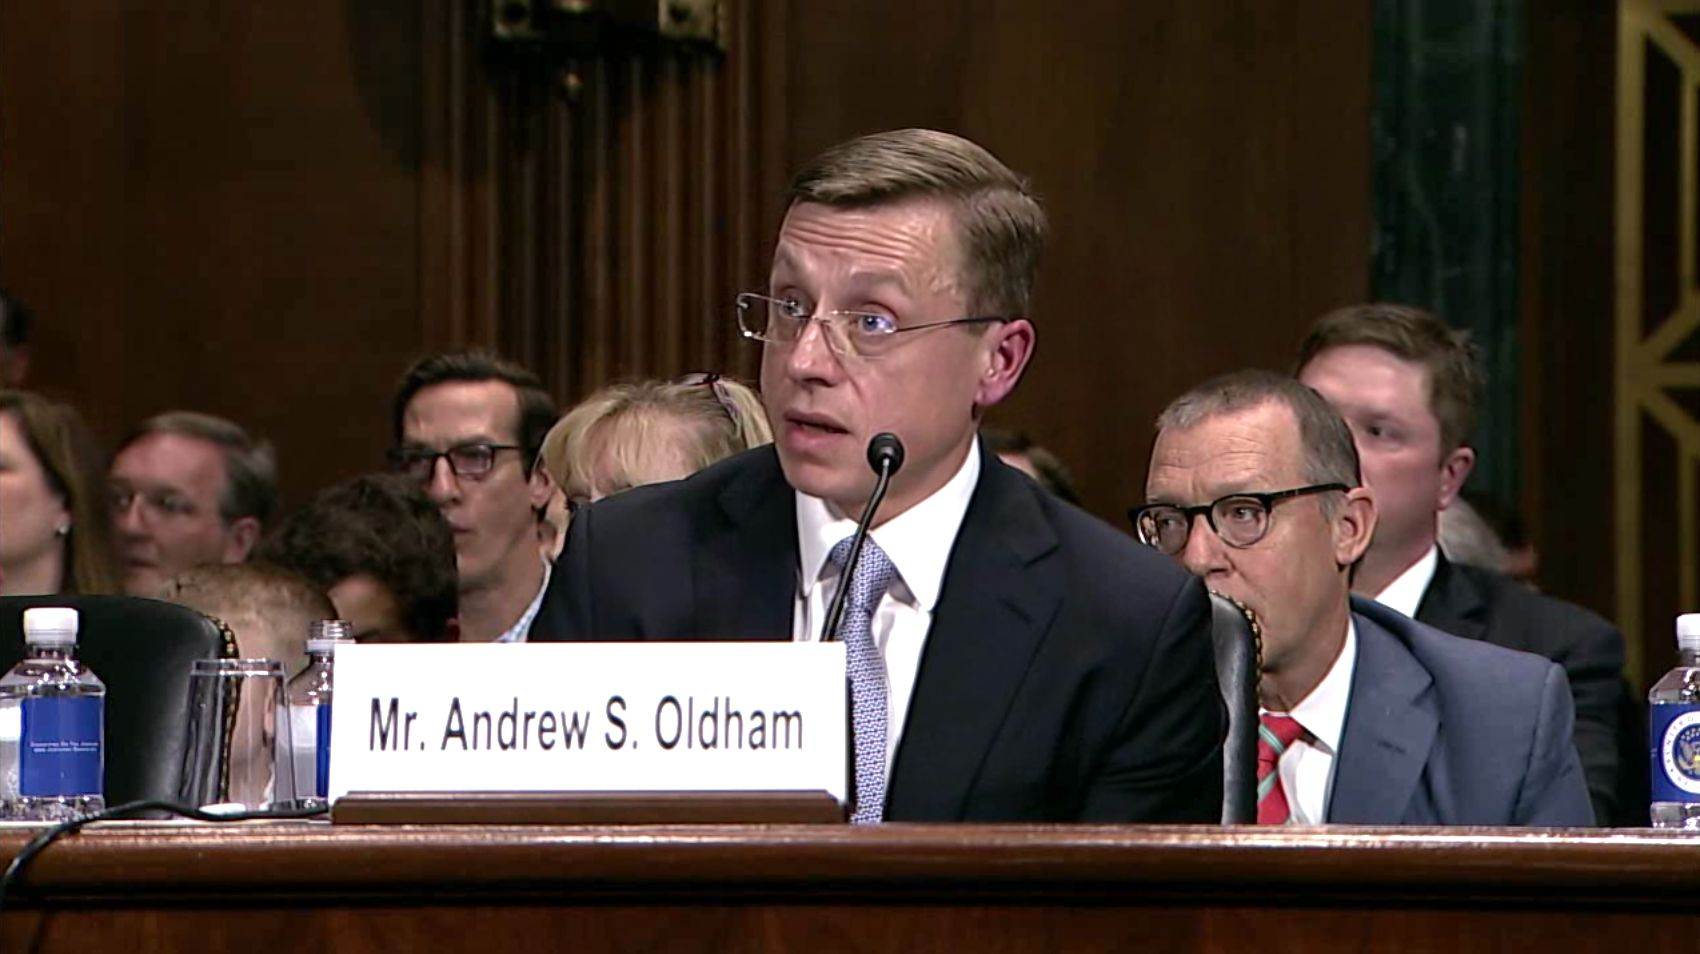 Andrew Oldham argued for gutting the Voting Rights Act. Now he's a federal judge.